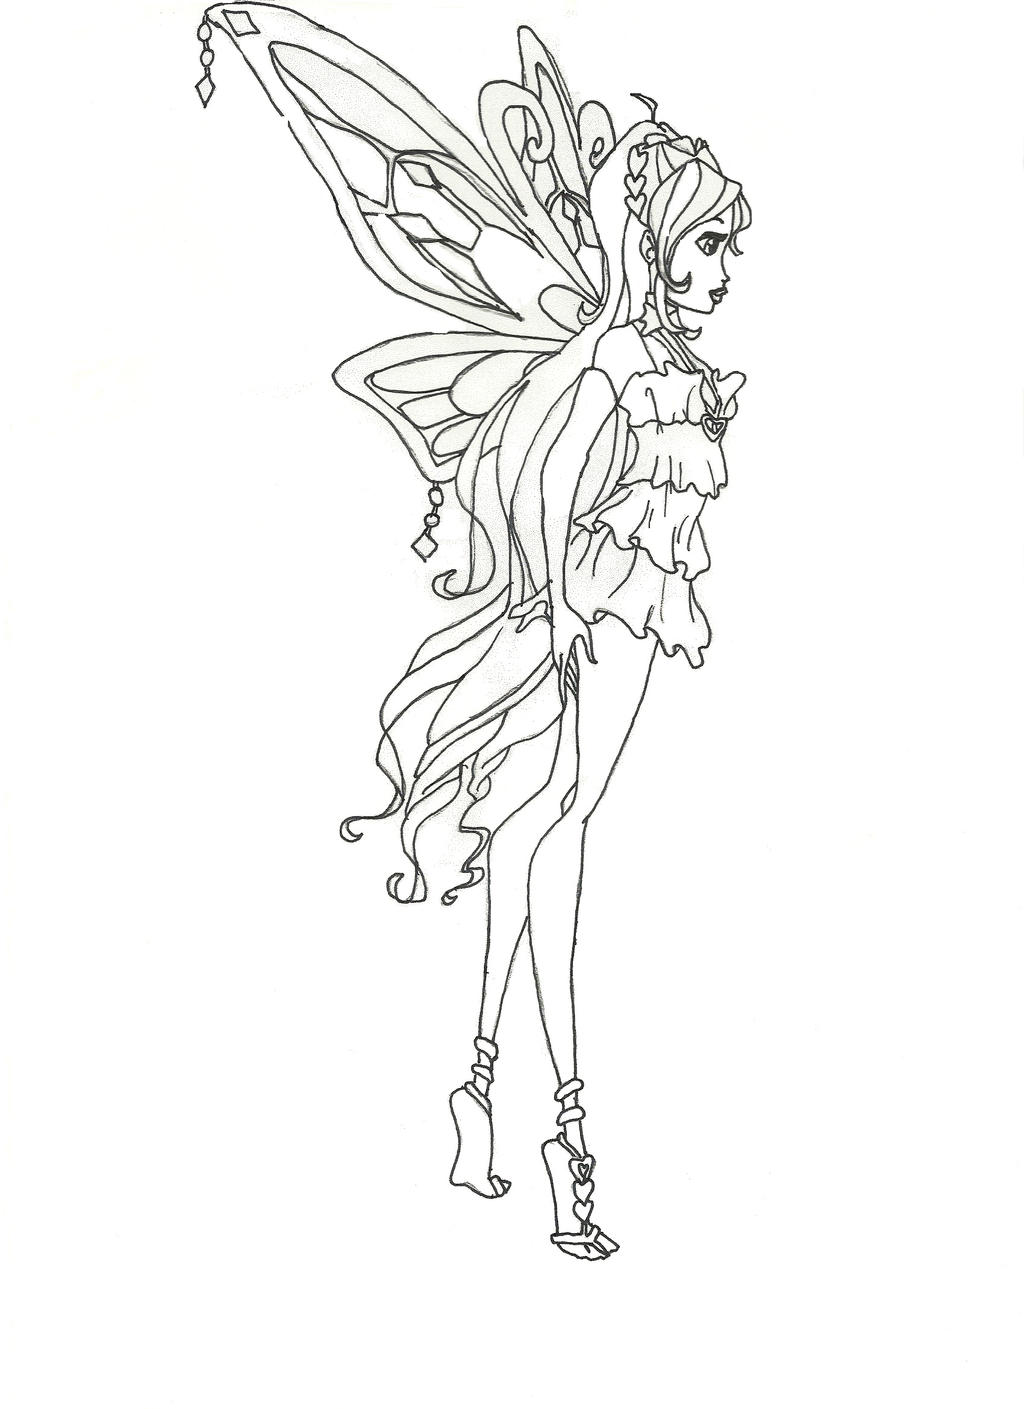 Winx Club Enchantix Bloom Coloring Page Side View By Winx Club Bloom Coloring Pages